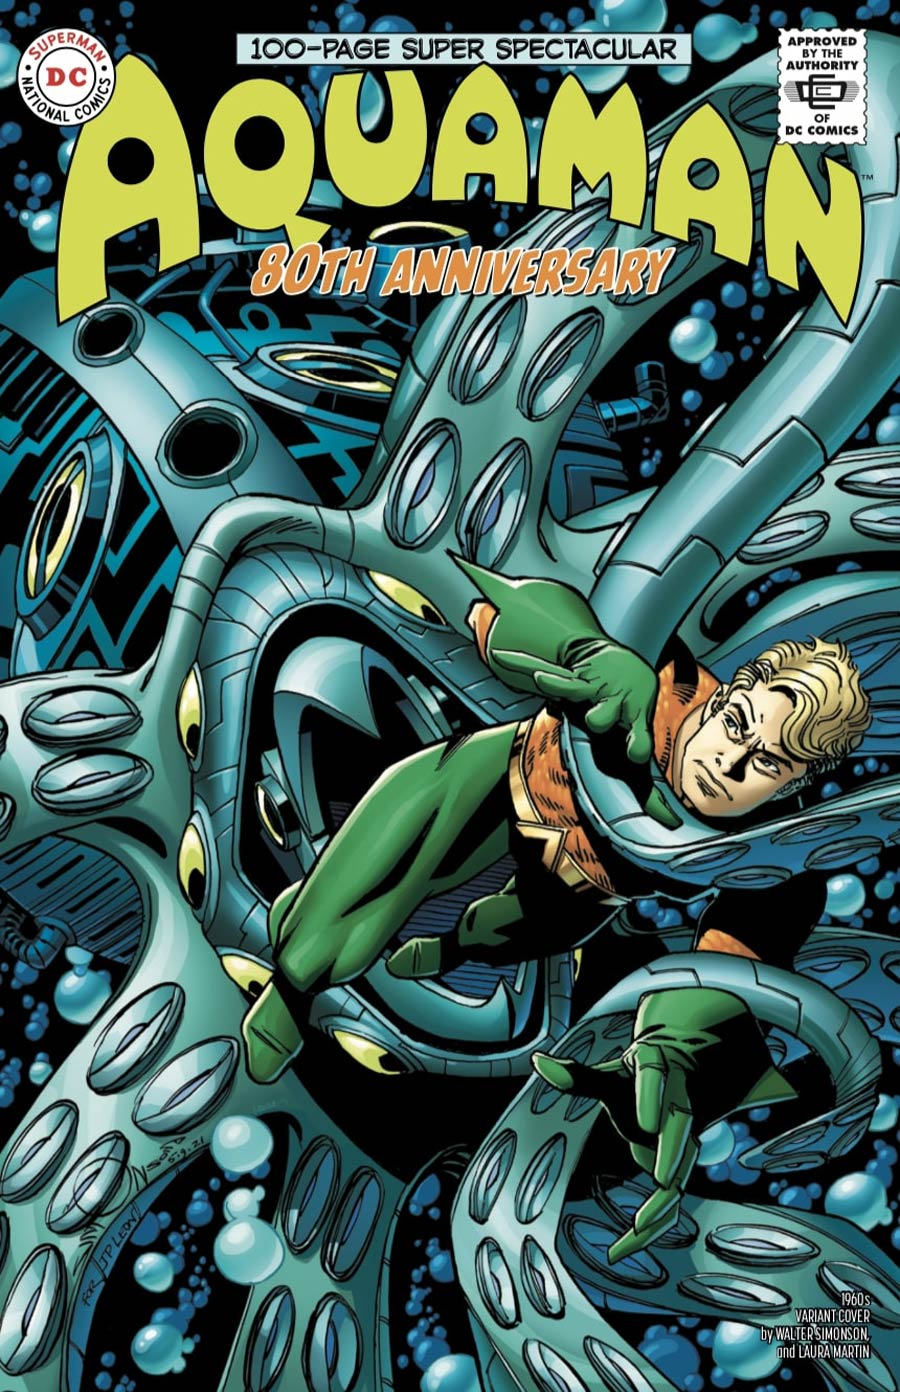 Aquaman-80th-Anniversary-100-Page-Spectacular-1-spoilers-0-4-1960s Aquaman-80th-Anniversary-100-Page-Spectacular-1-spoilers-0-4-1960s